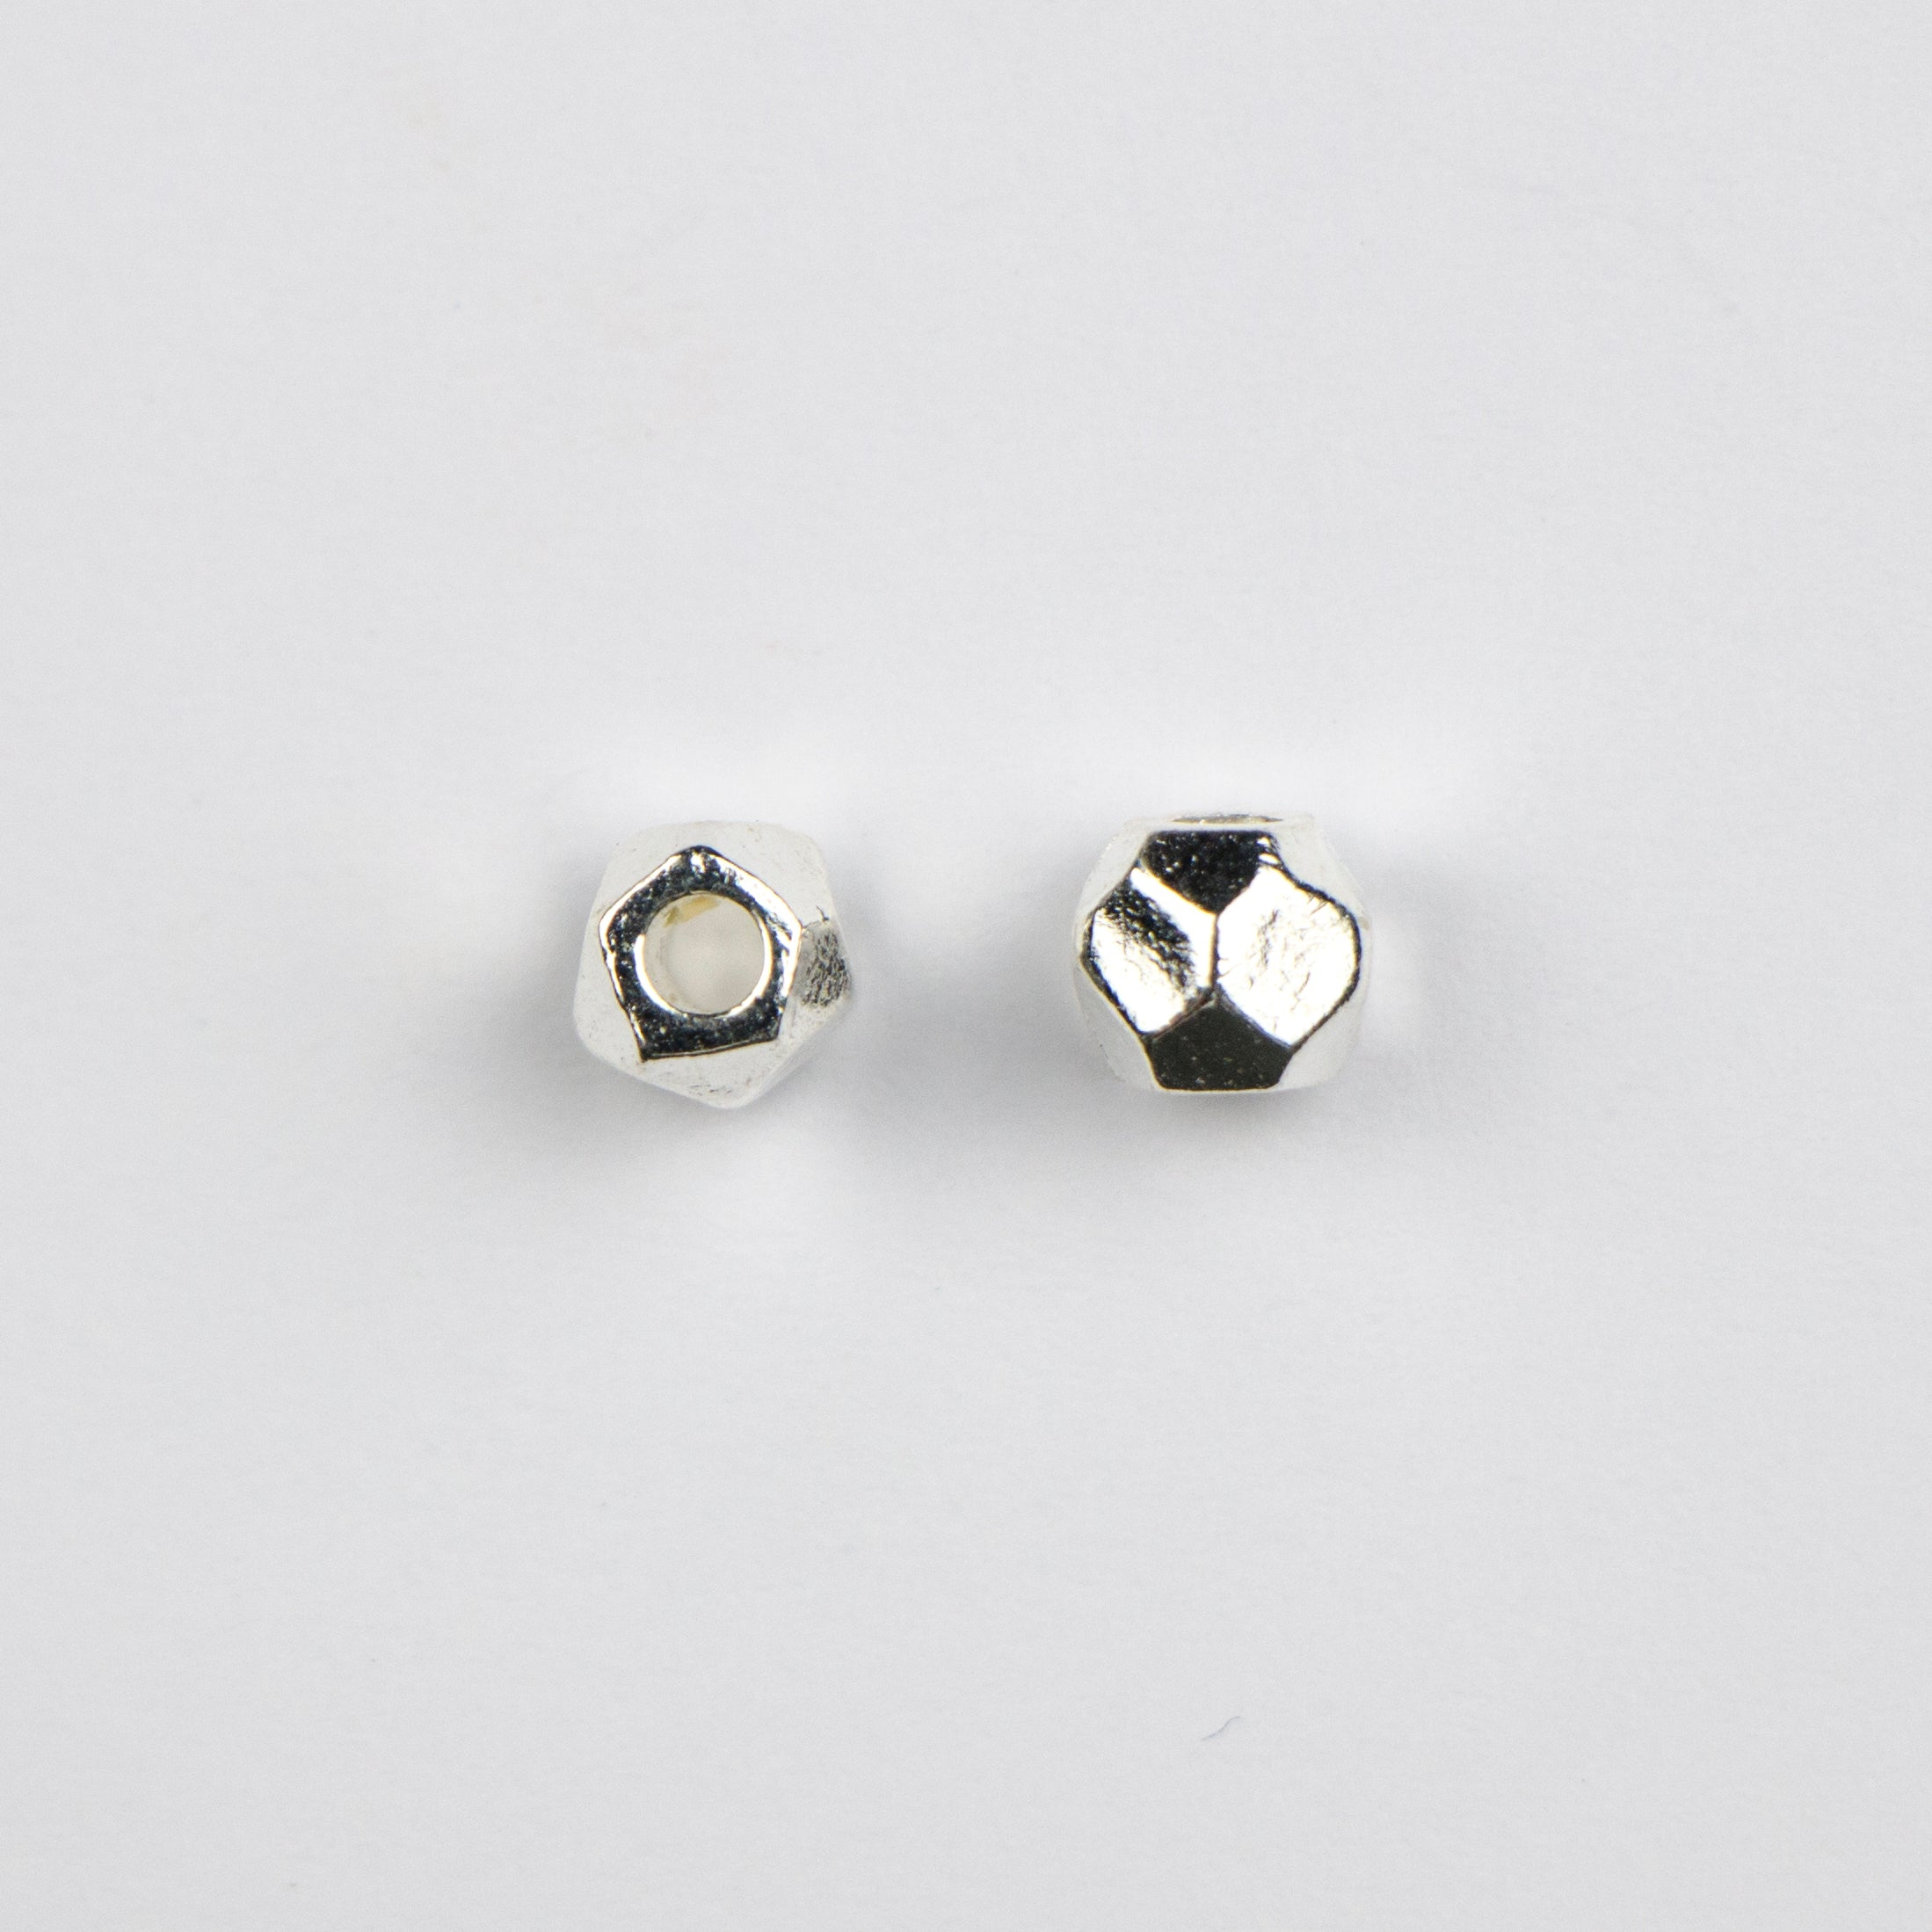 5.1mm x 6.0mm Faceted Round Metal Bead - Stirling Silver Plate***